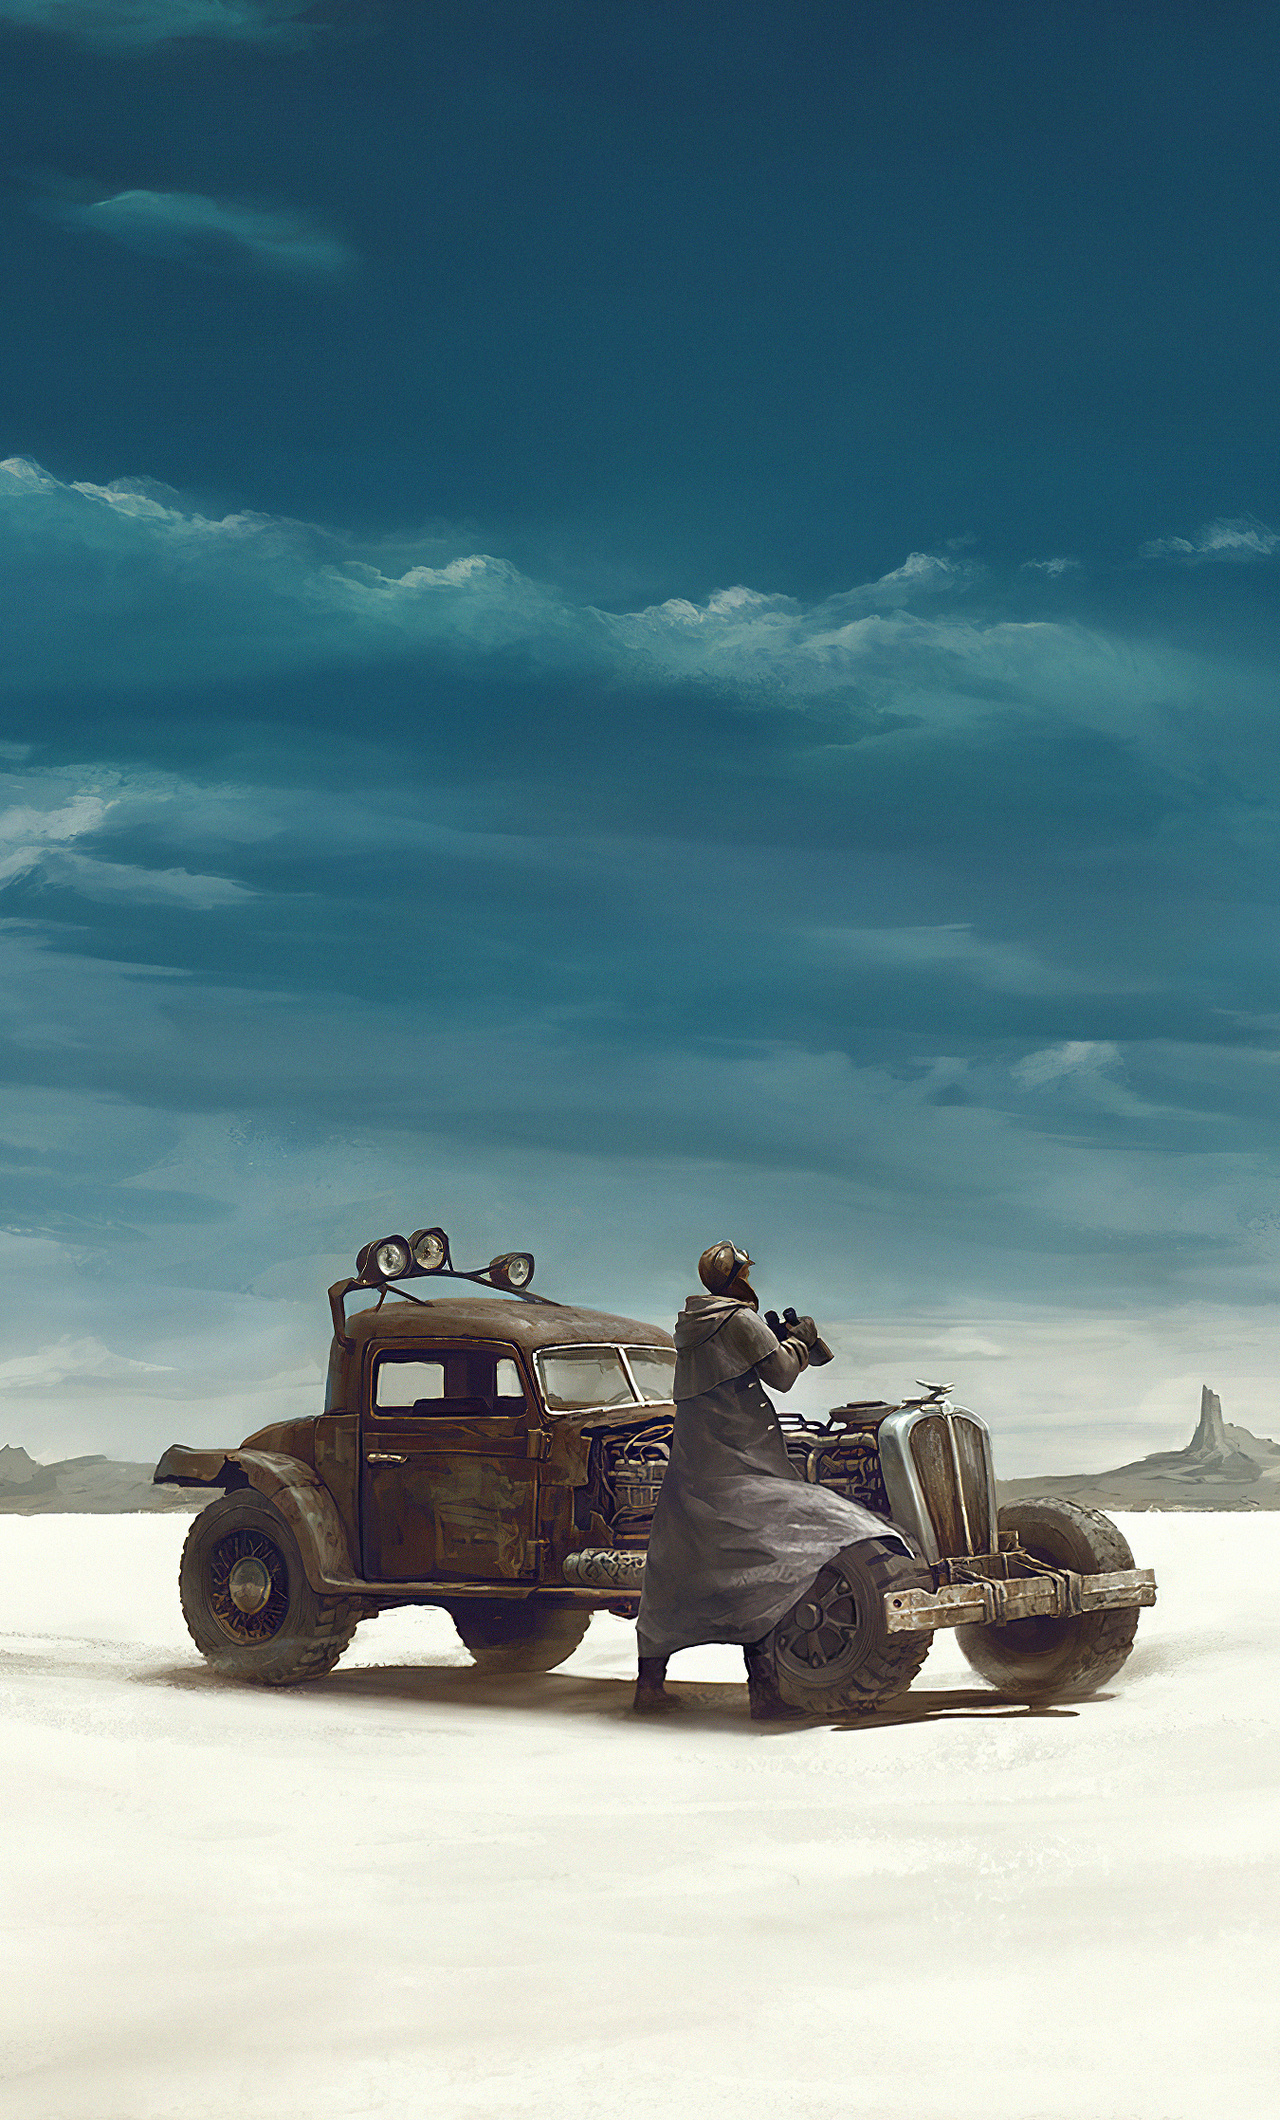 desert-alone-man-car-yv.jpg